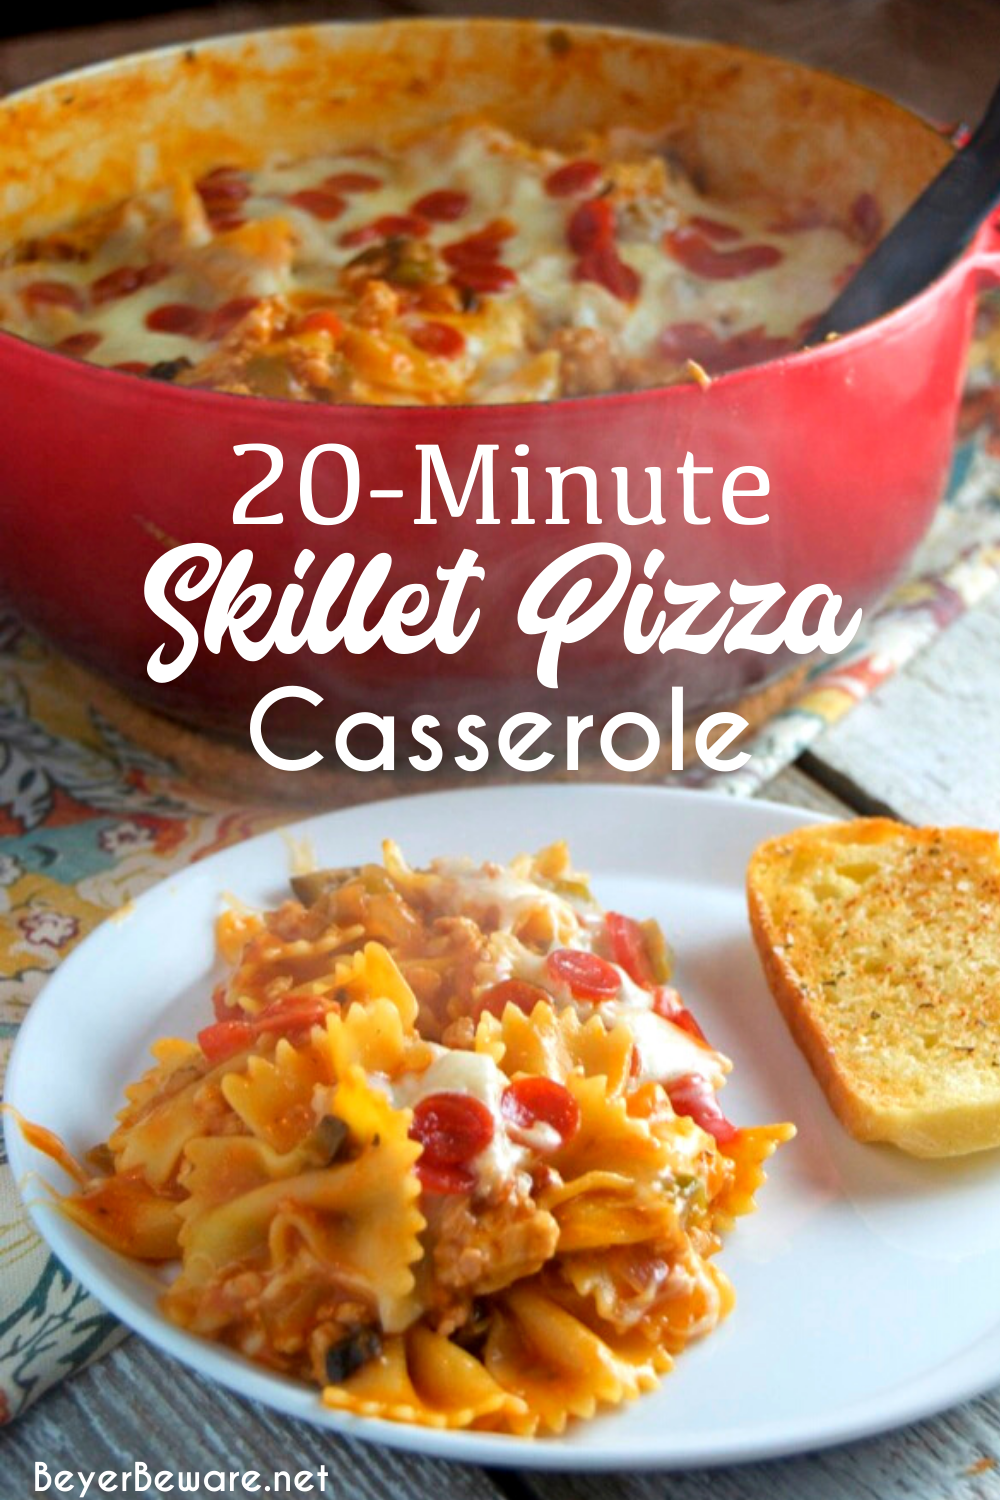 20-Minute Skillet Pizza Casserole is a quick weeknight pasta meal all made in the same pan and filled with all the ingredients you love on your favorite pizza.